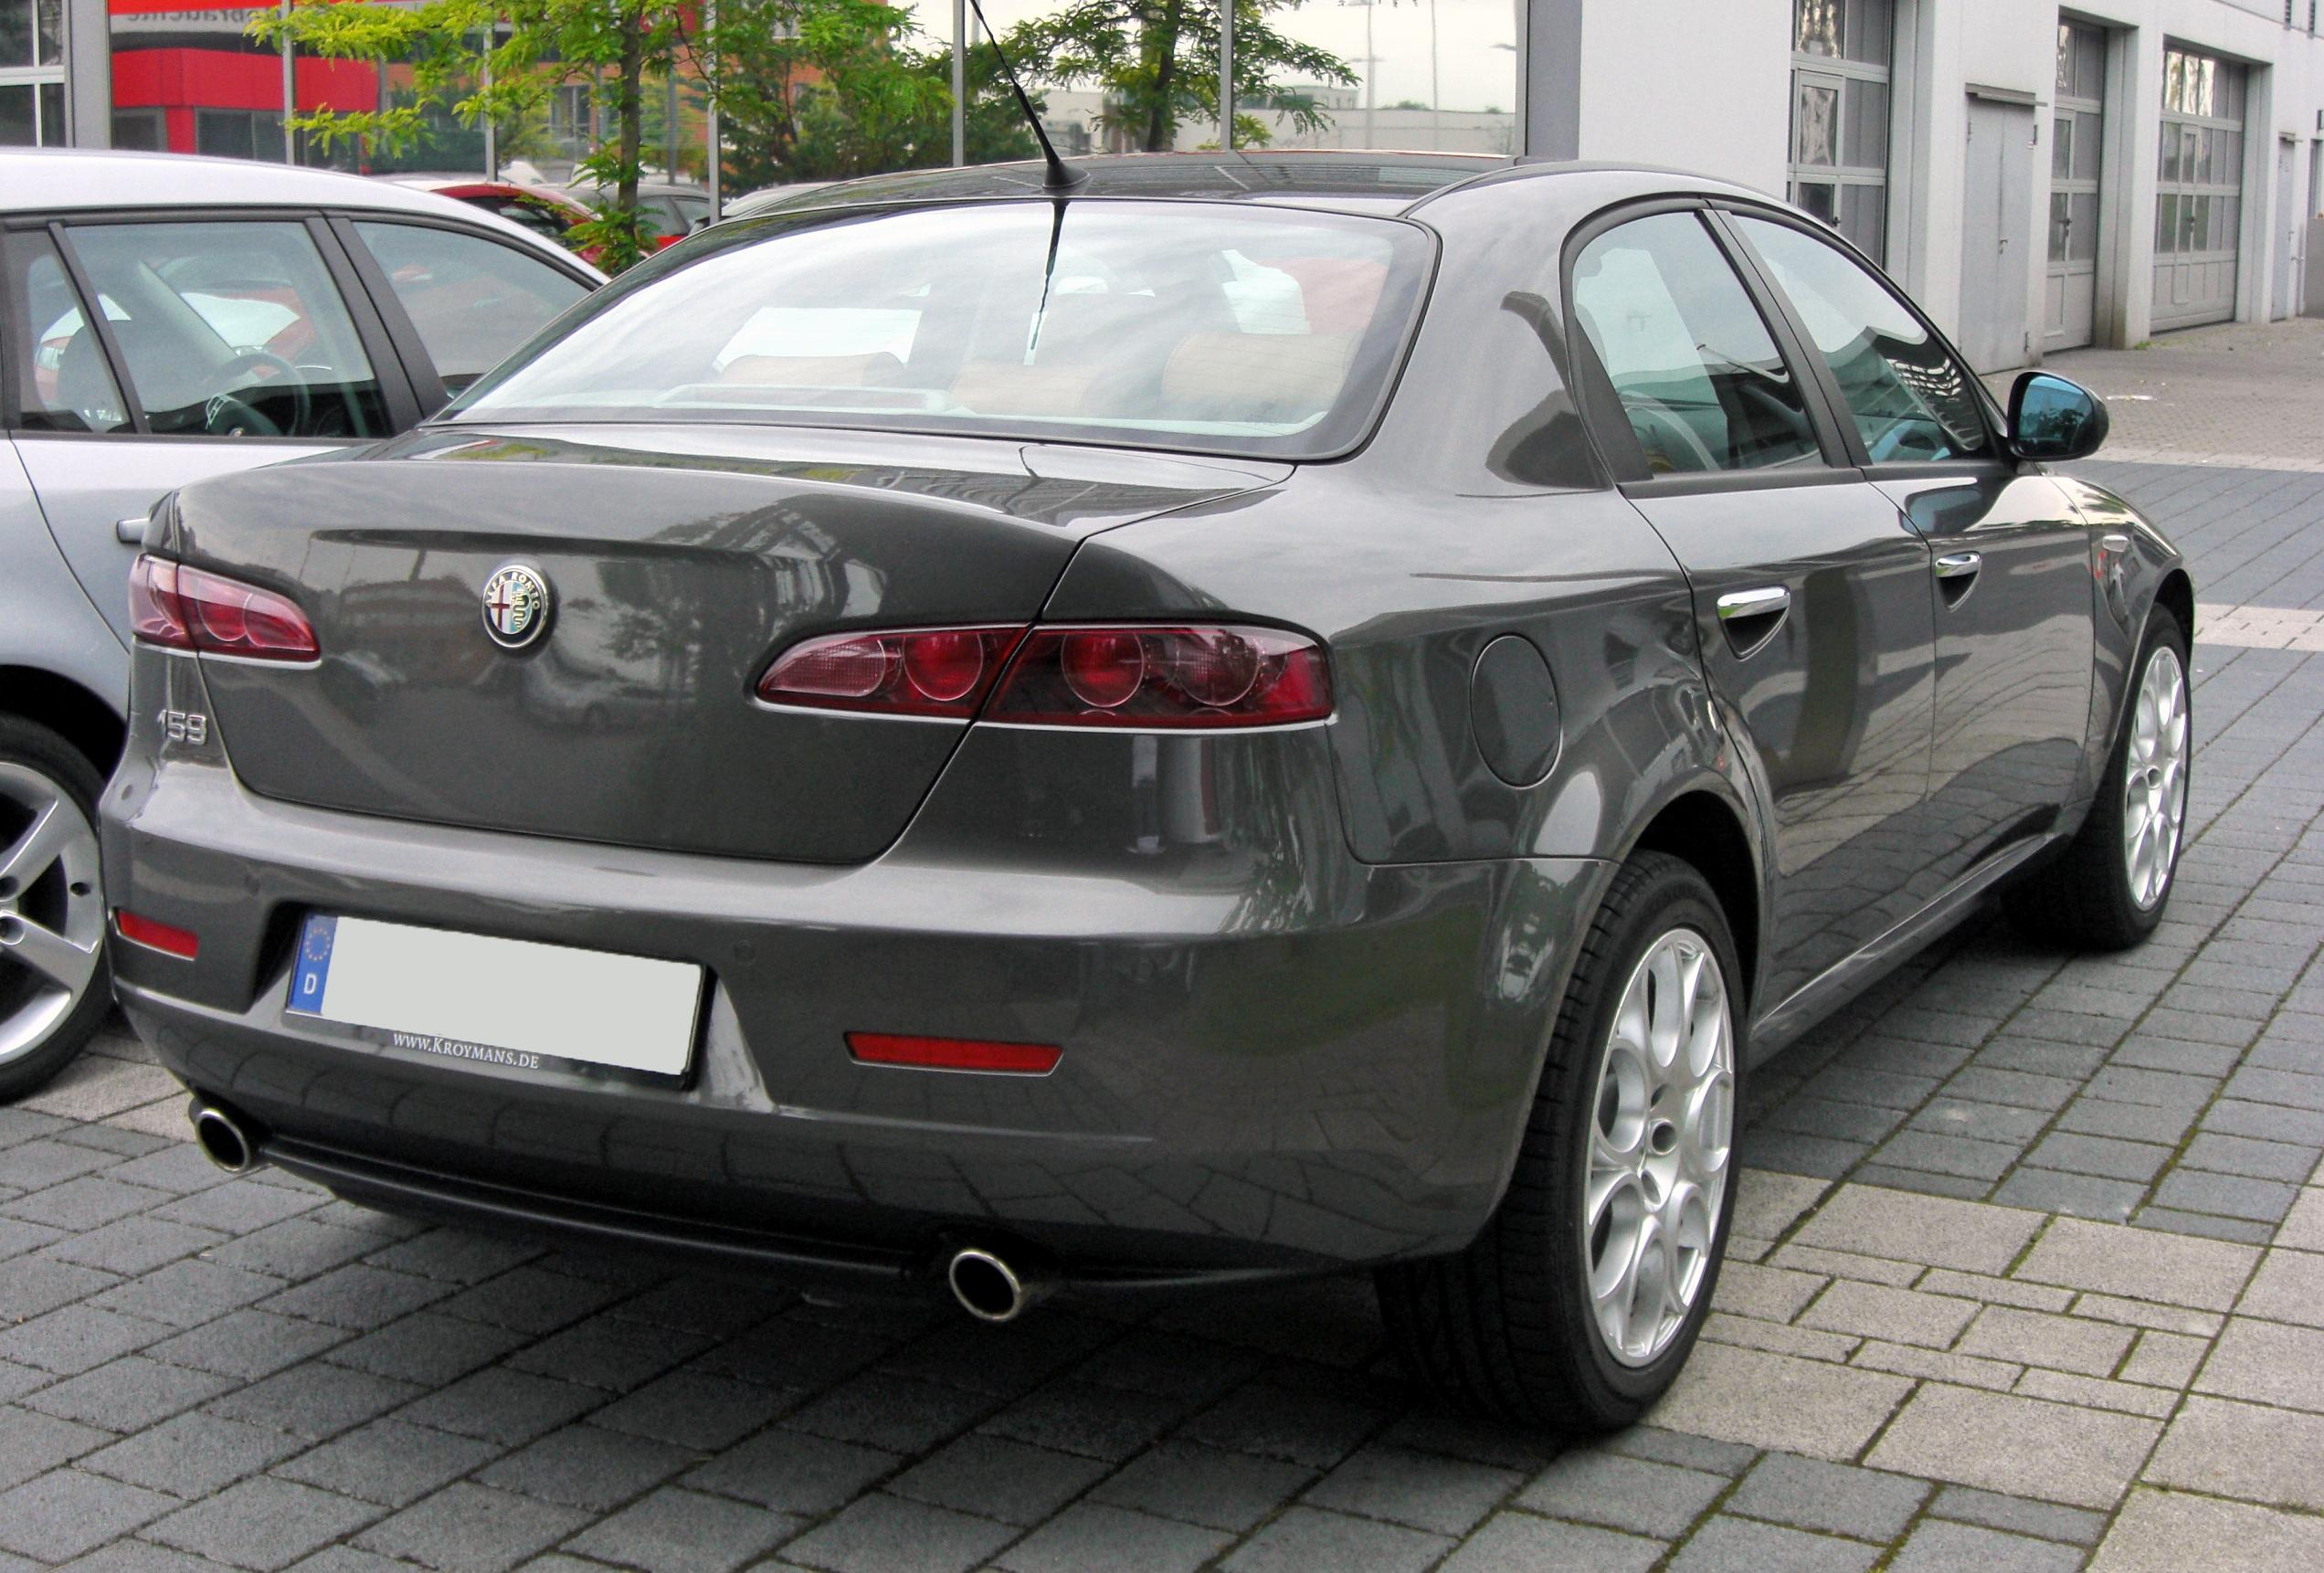 File:Alfa Romeo 159 Facelift 20090620 rear.JPG